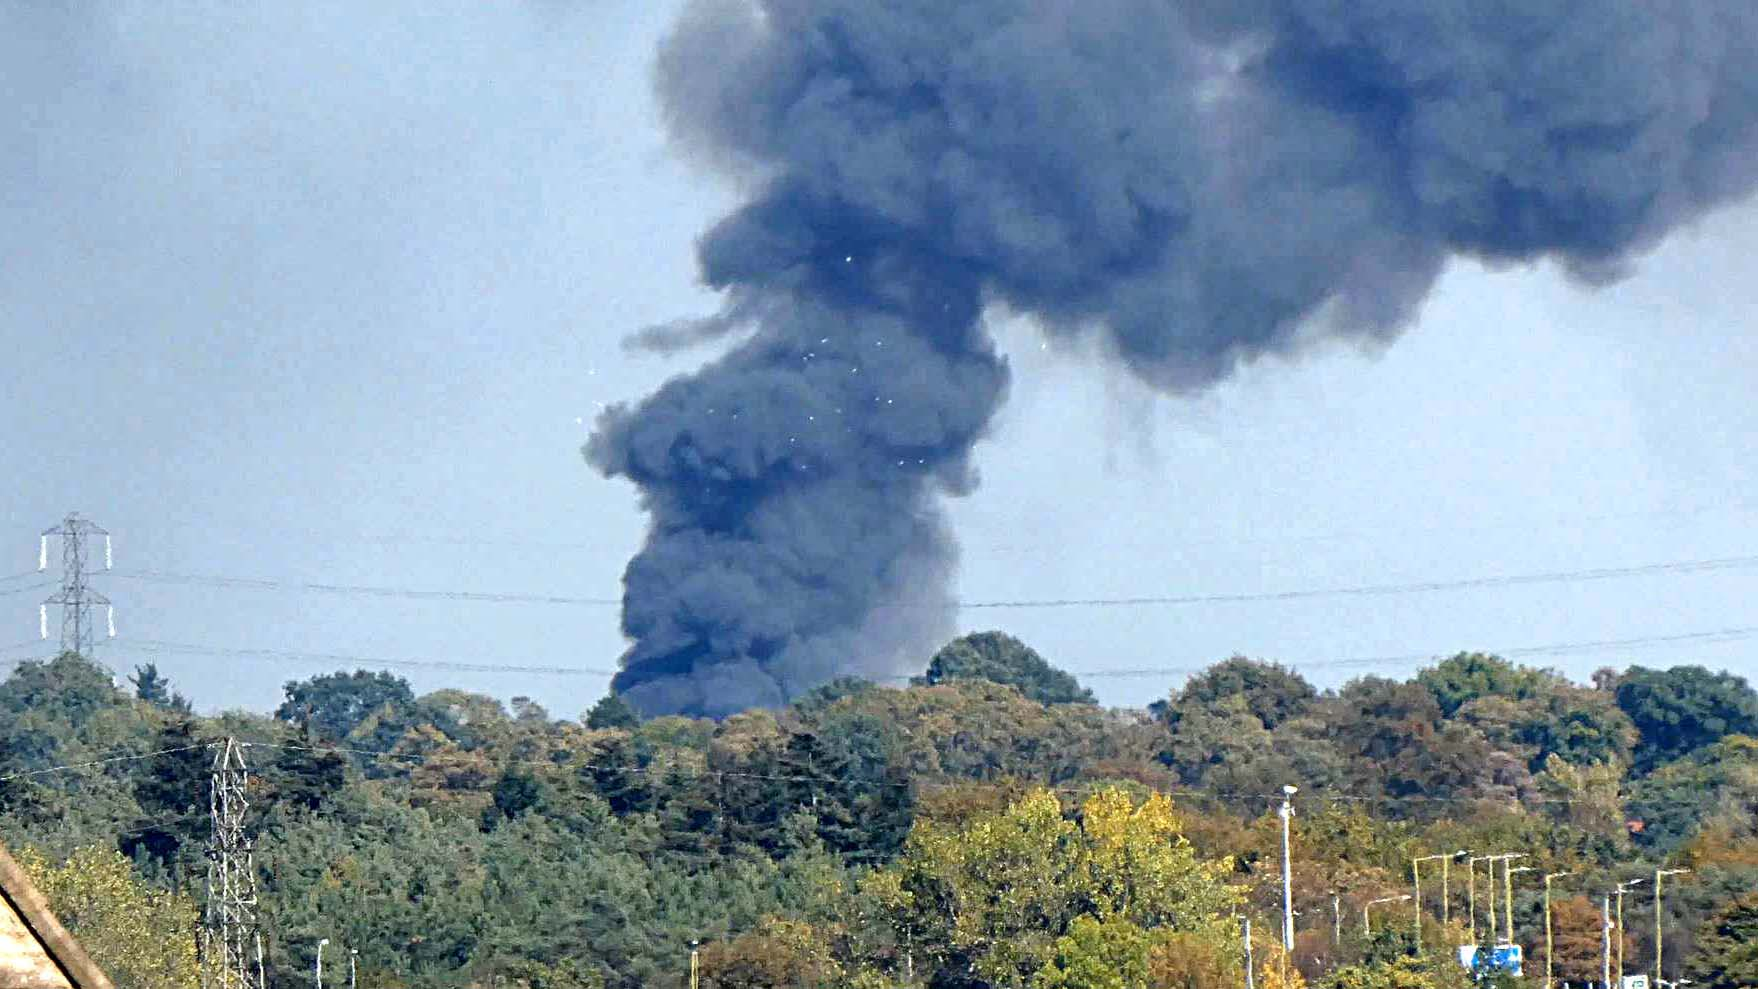 Scrapyard fire in Aldenham could be seen for miles as Thick Black smoke bellowed into the sky.